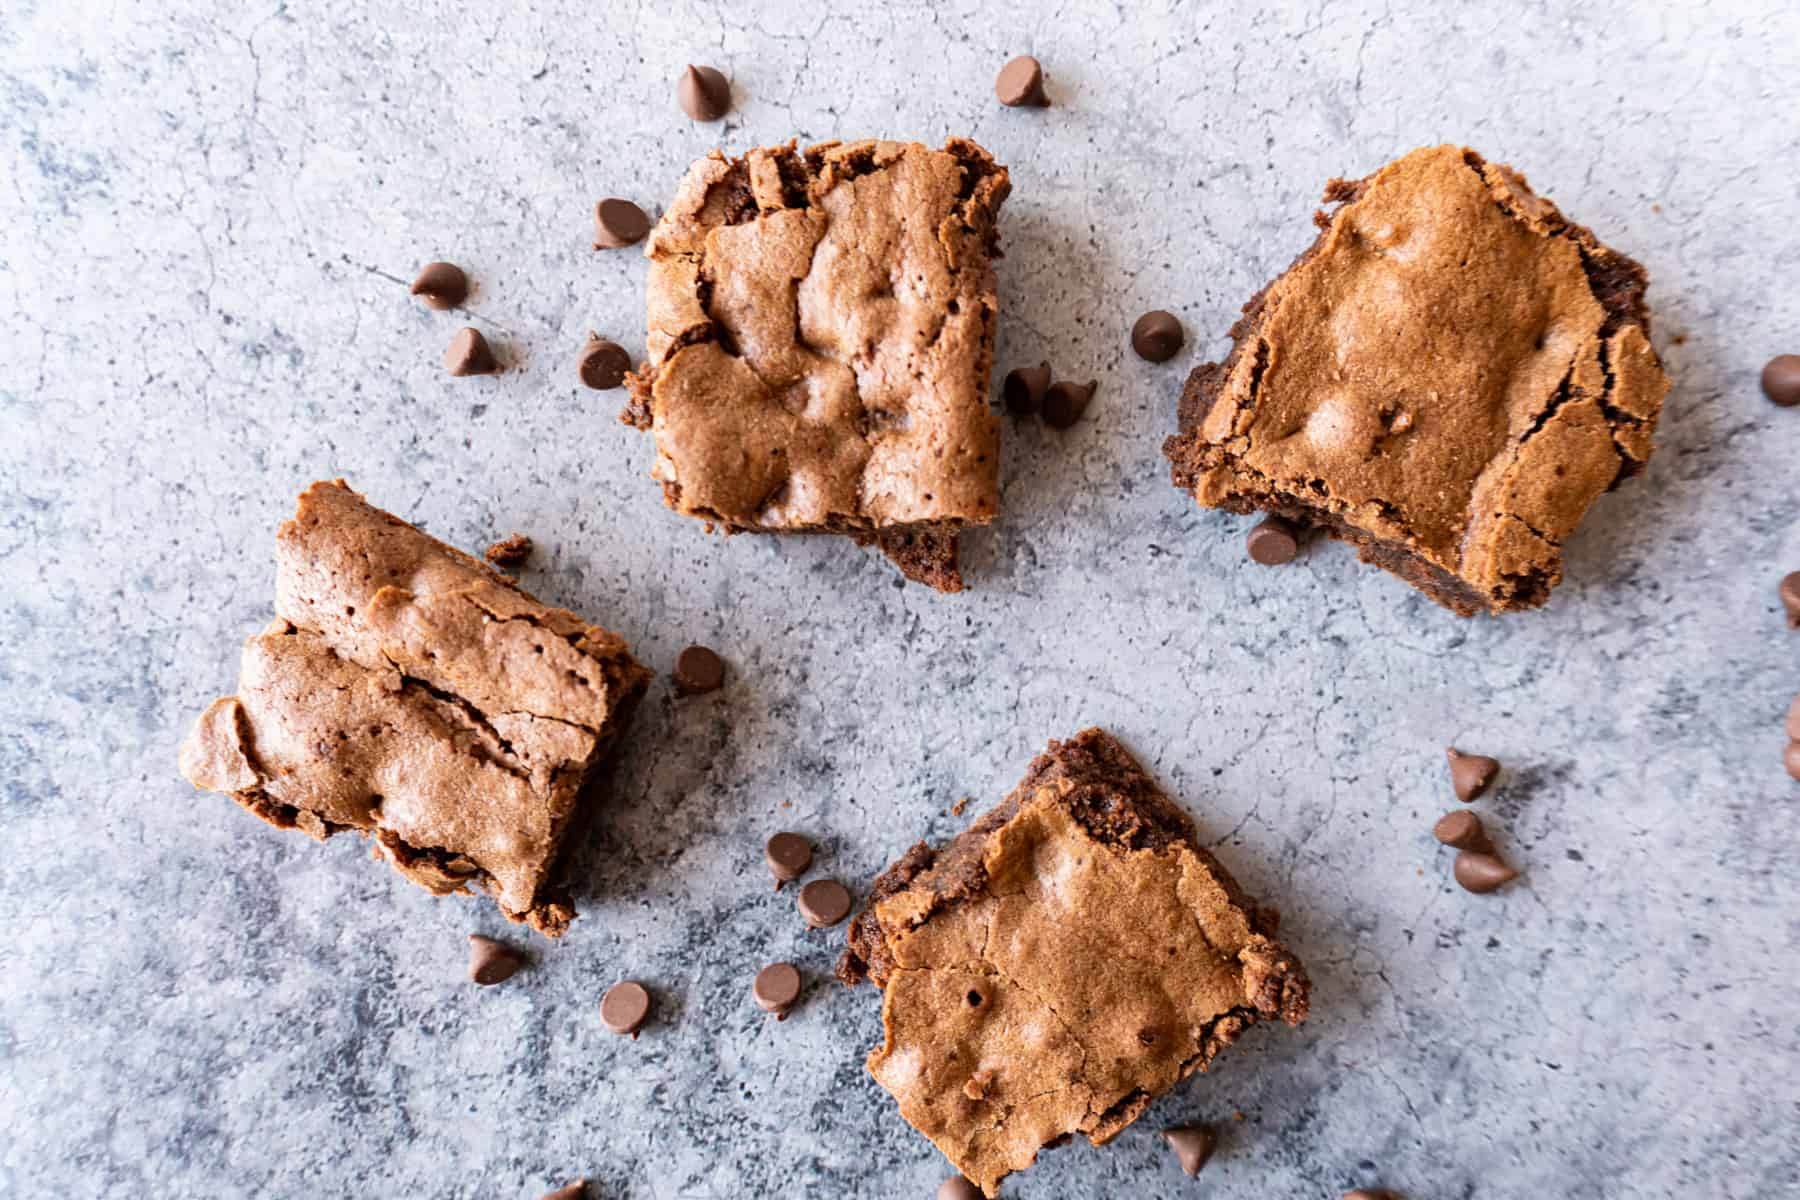 brownie pieces with chocolate chips surrounding them